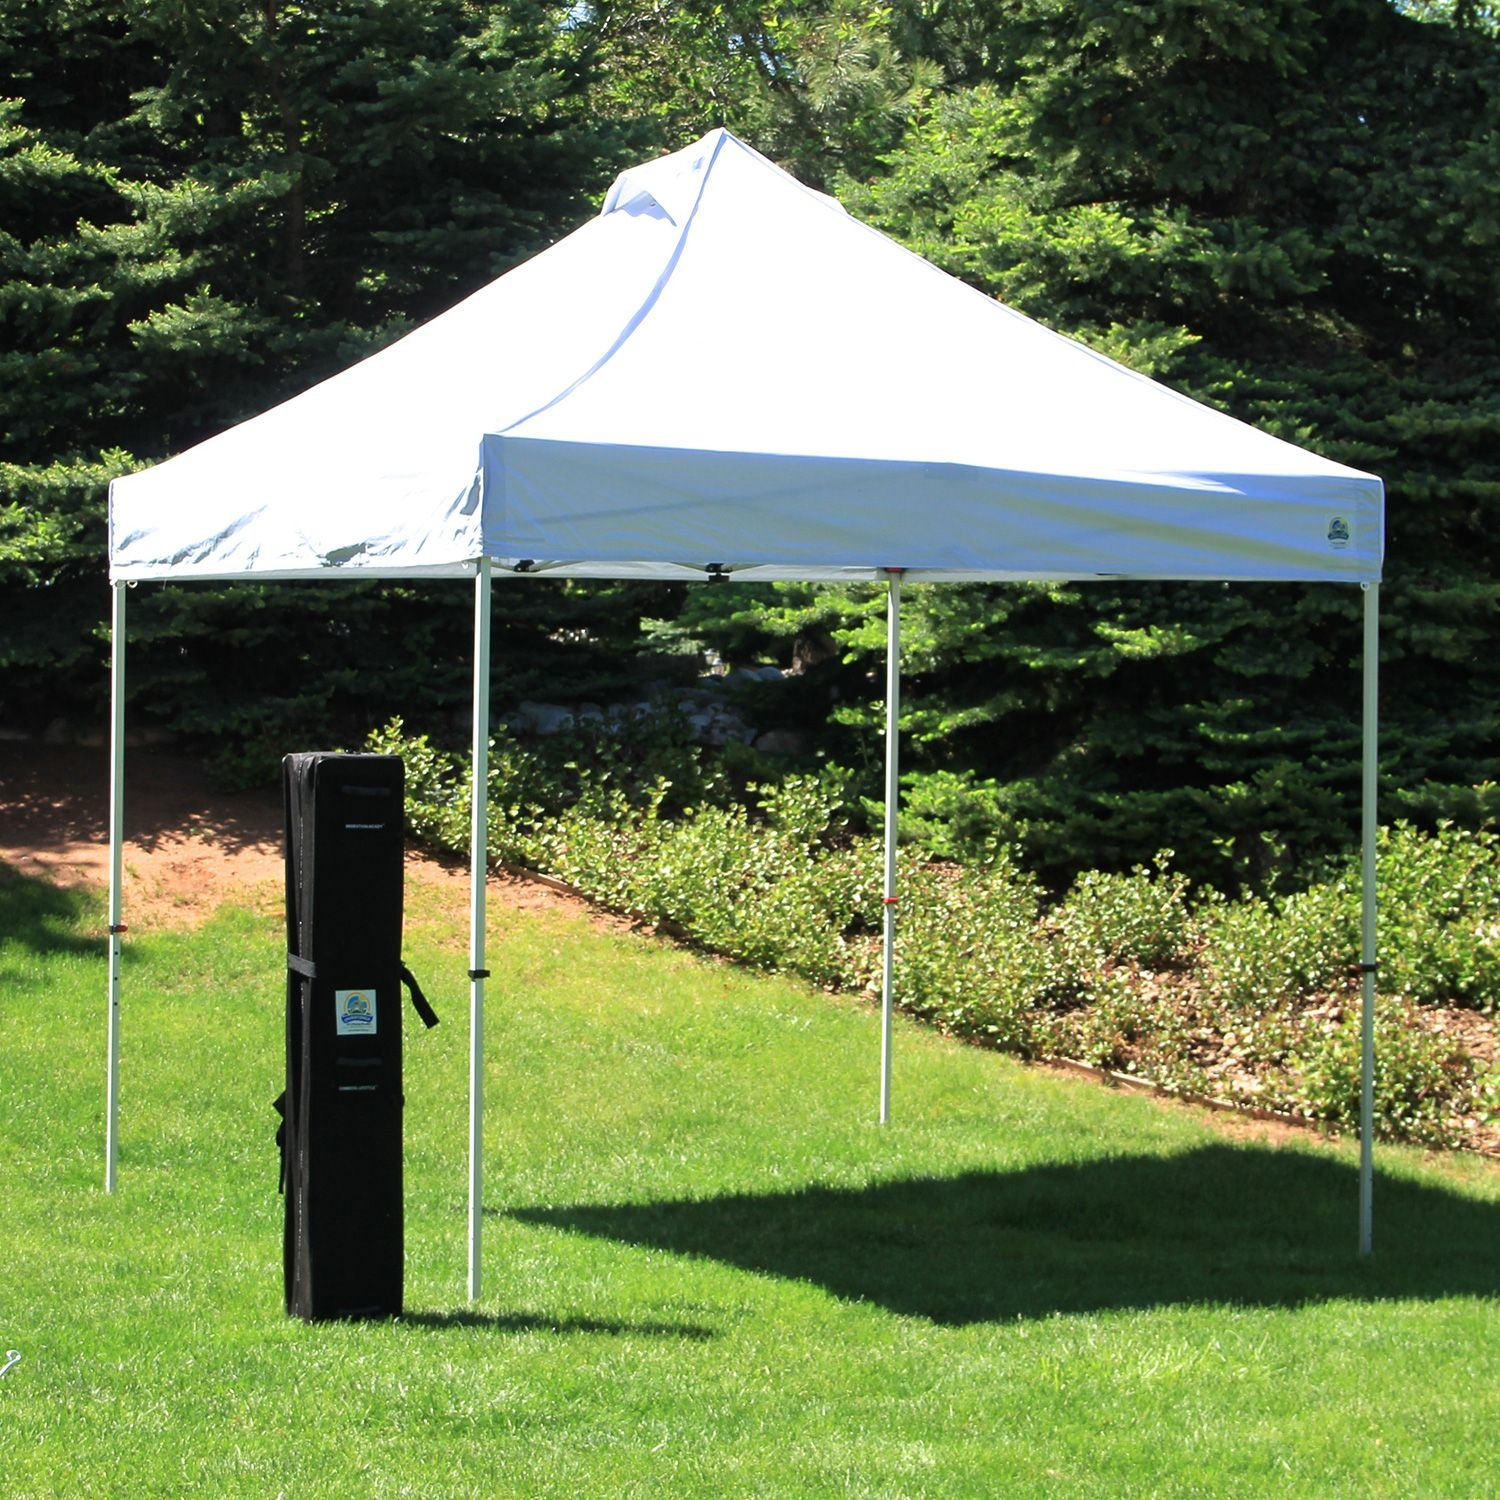 Amazon.com  Undercover Canopy UC-3 Super Lightweight Popup Shade  Sun Shelters  Sports u0026 Outdoors & Amazon.com : Undercover Canopy UC-3 Super Lightweight Popup Shade ...